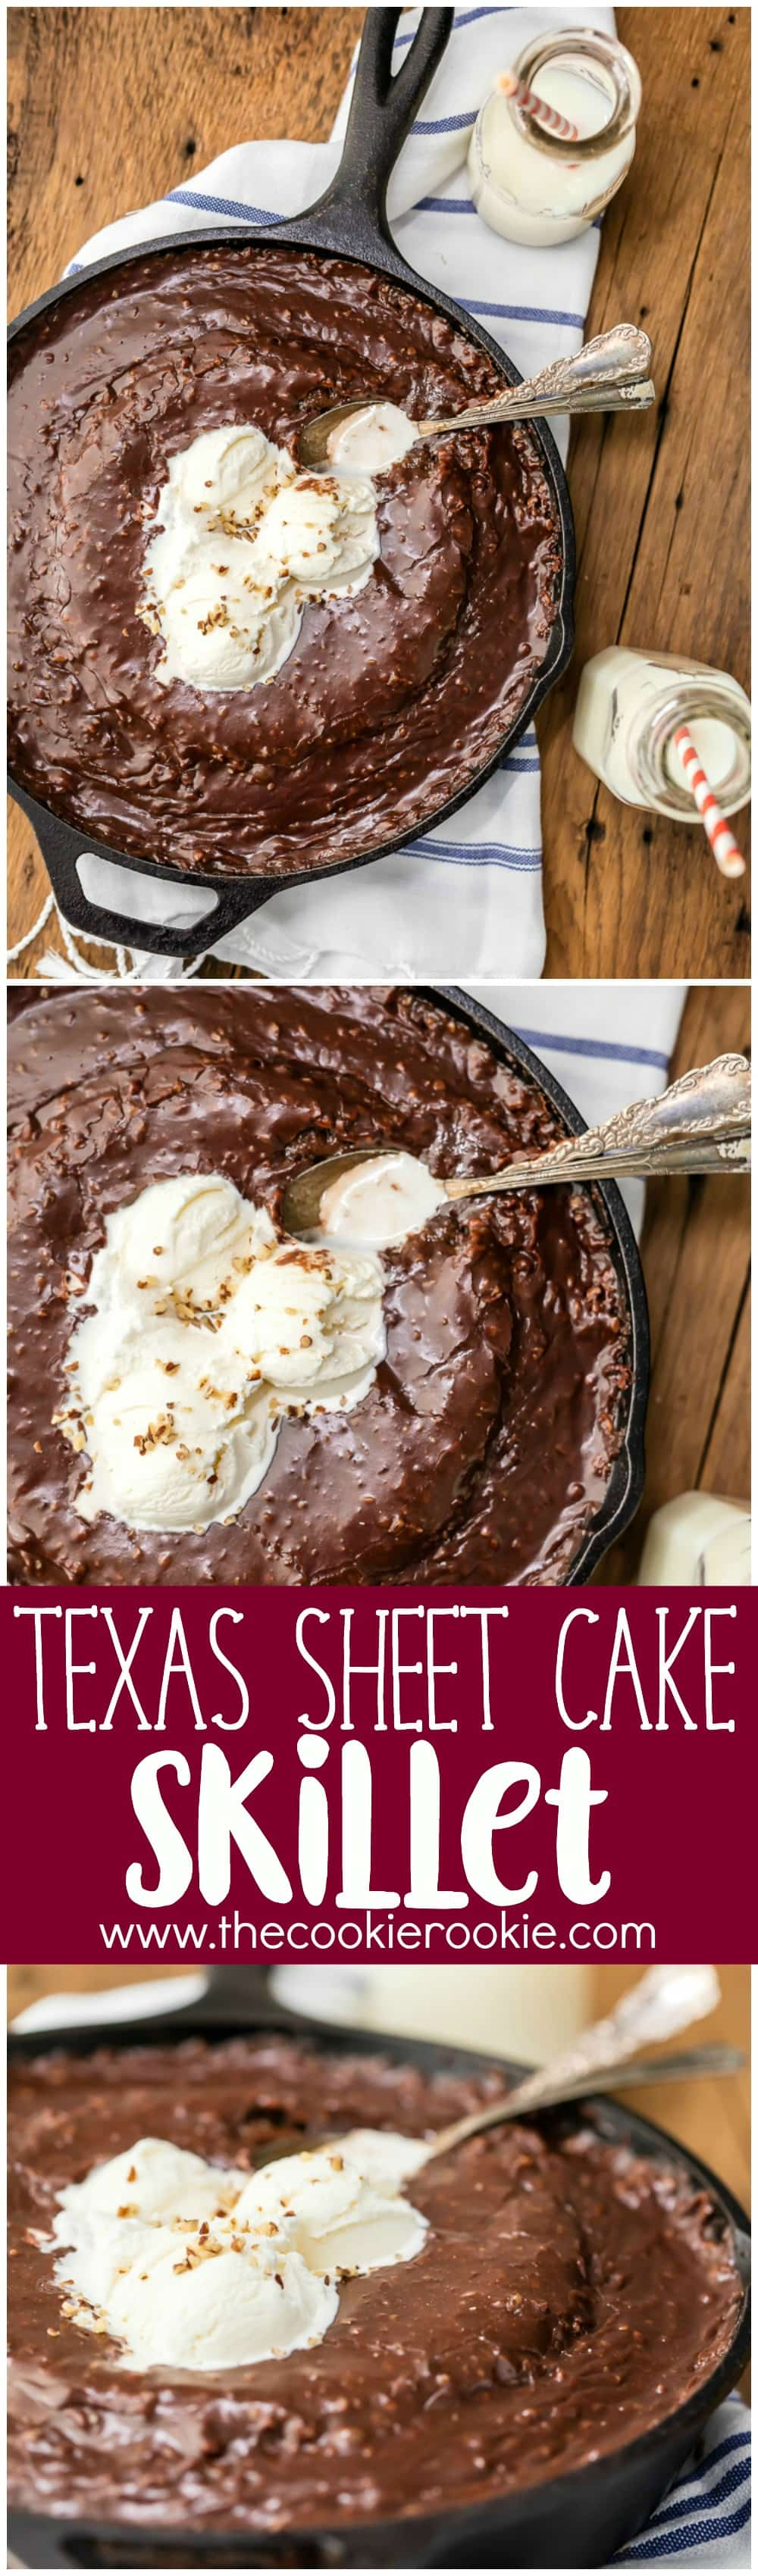 Gooey Texas Sheet Cake Skillet - The Cookie Rookie